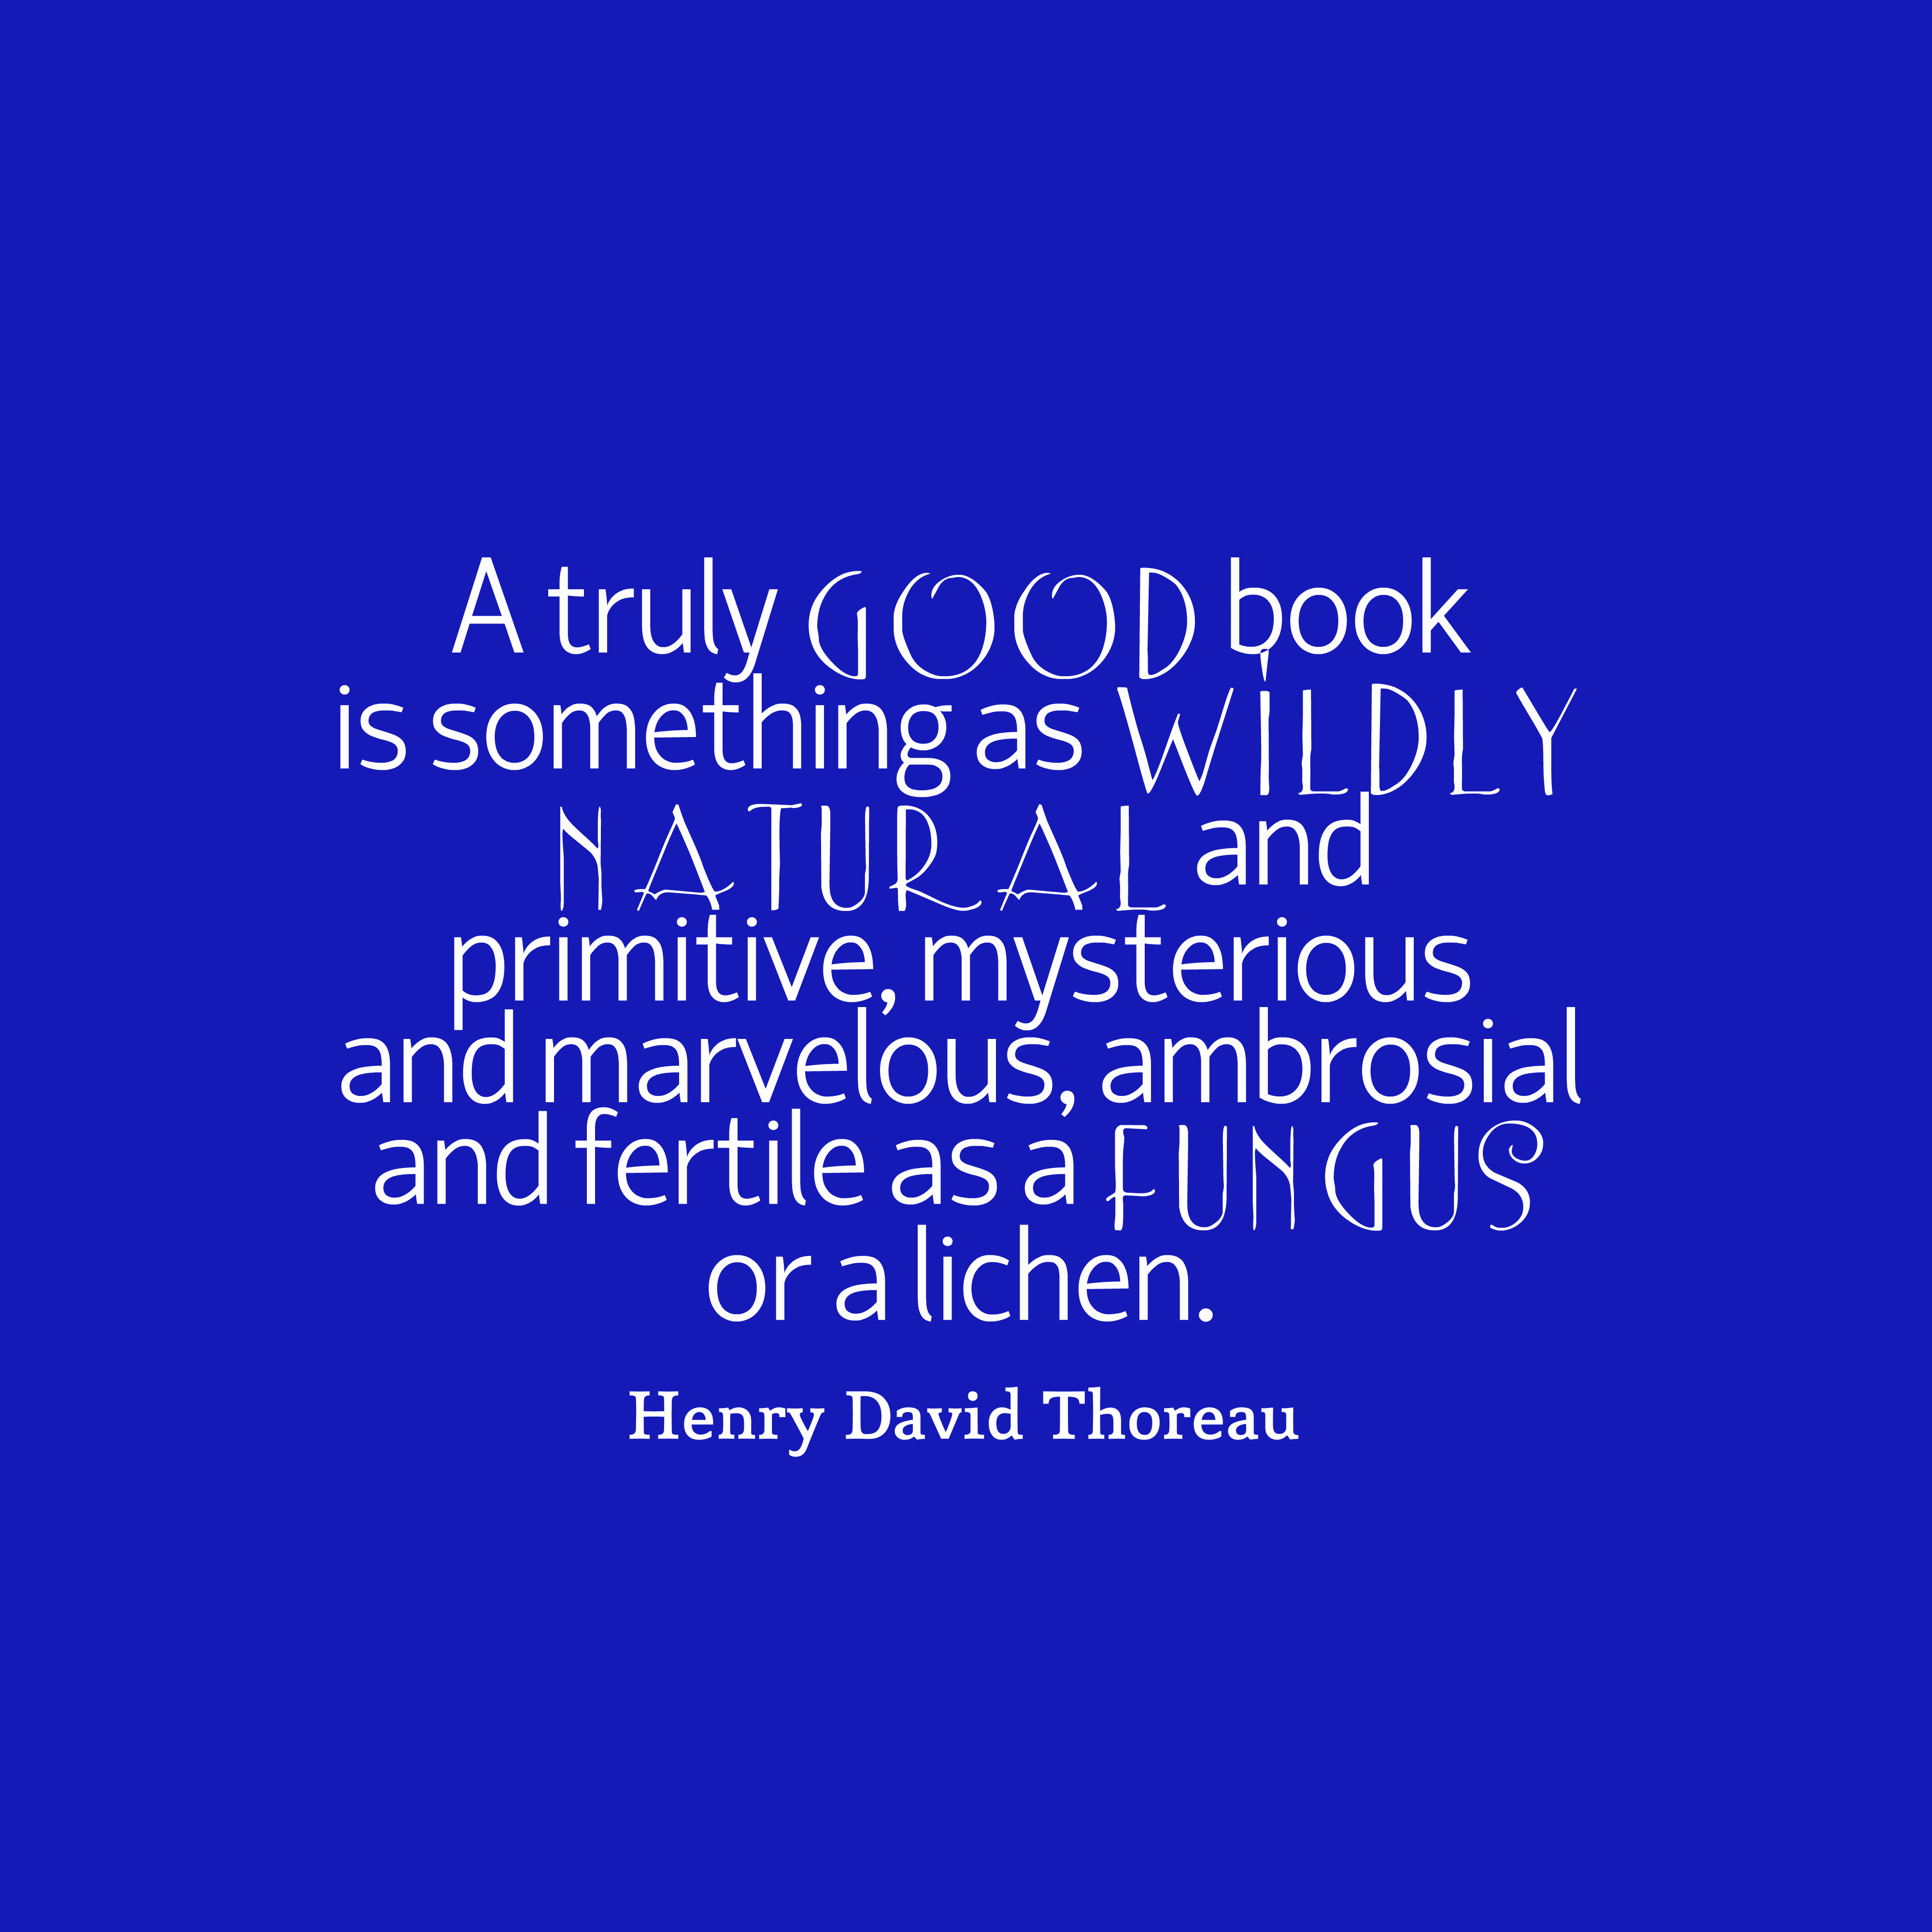 Henry David Thoreau Quote About Books